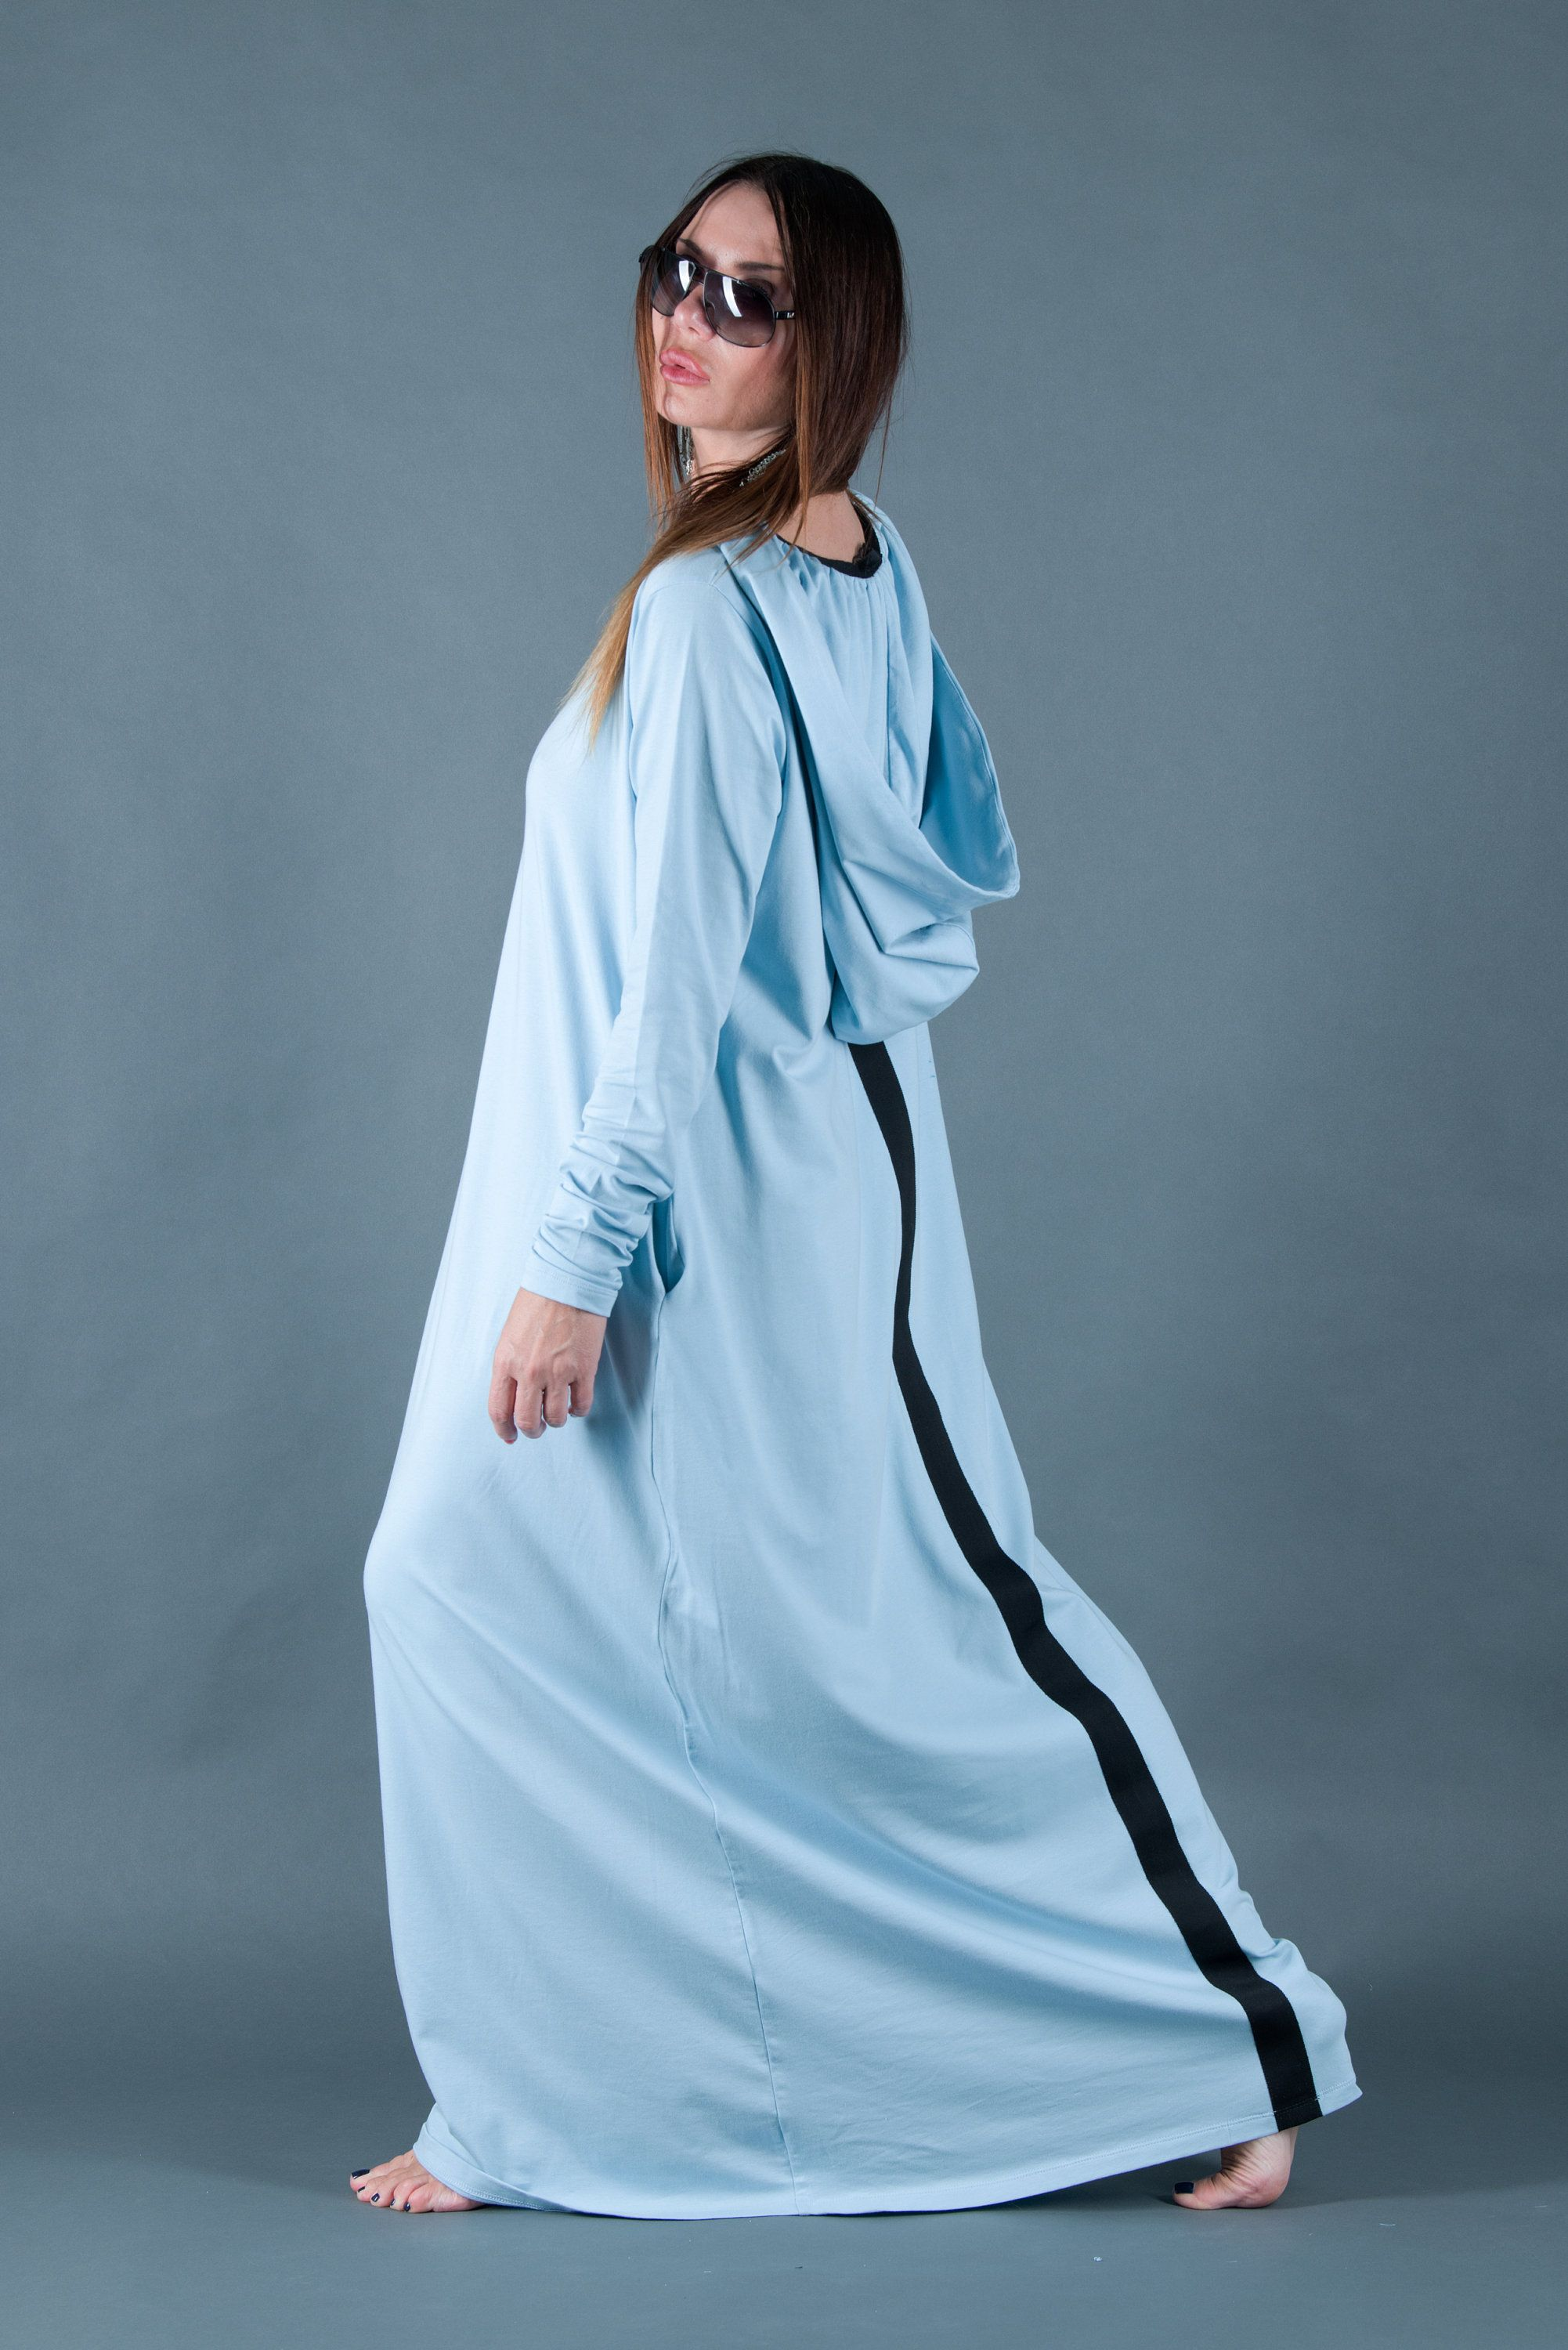 45773a73b47a Light Blue Women Cotton Hooded Dress, Loose Maxi Dress, Hooded Maxi Dress  with Black Stripe, Long Dress - DR0235TR by EUGfashion on Etsy